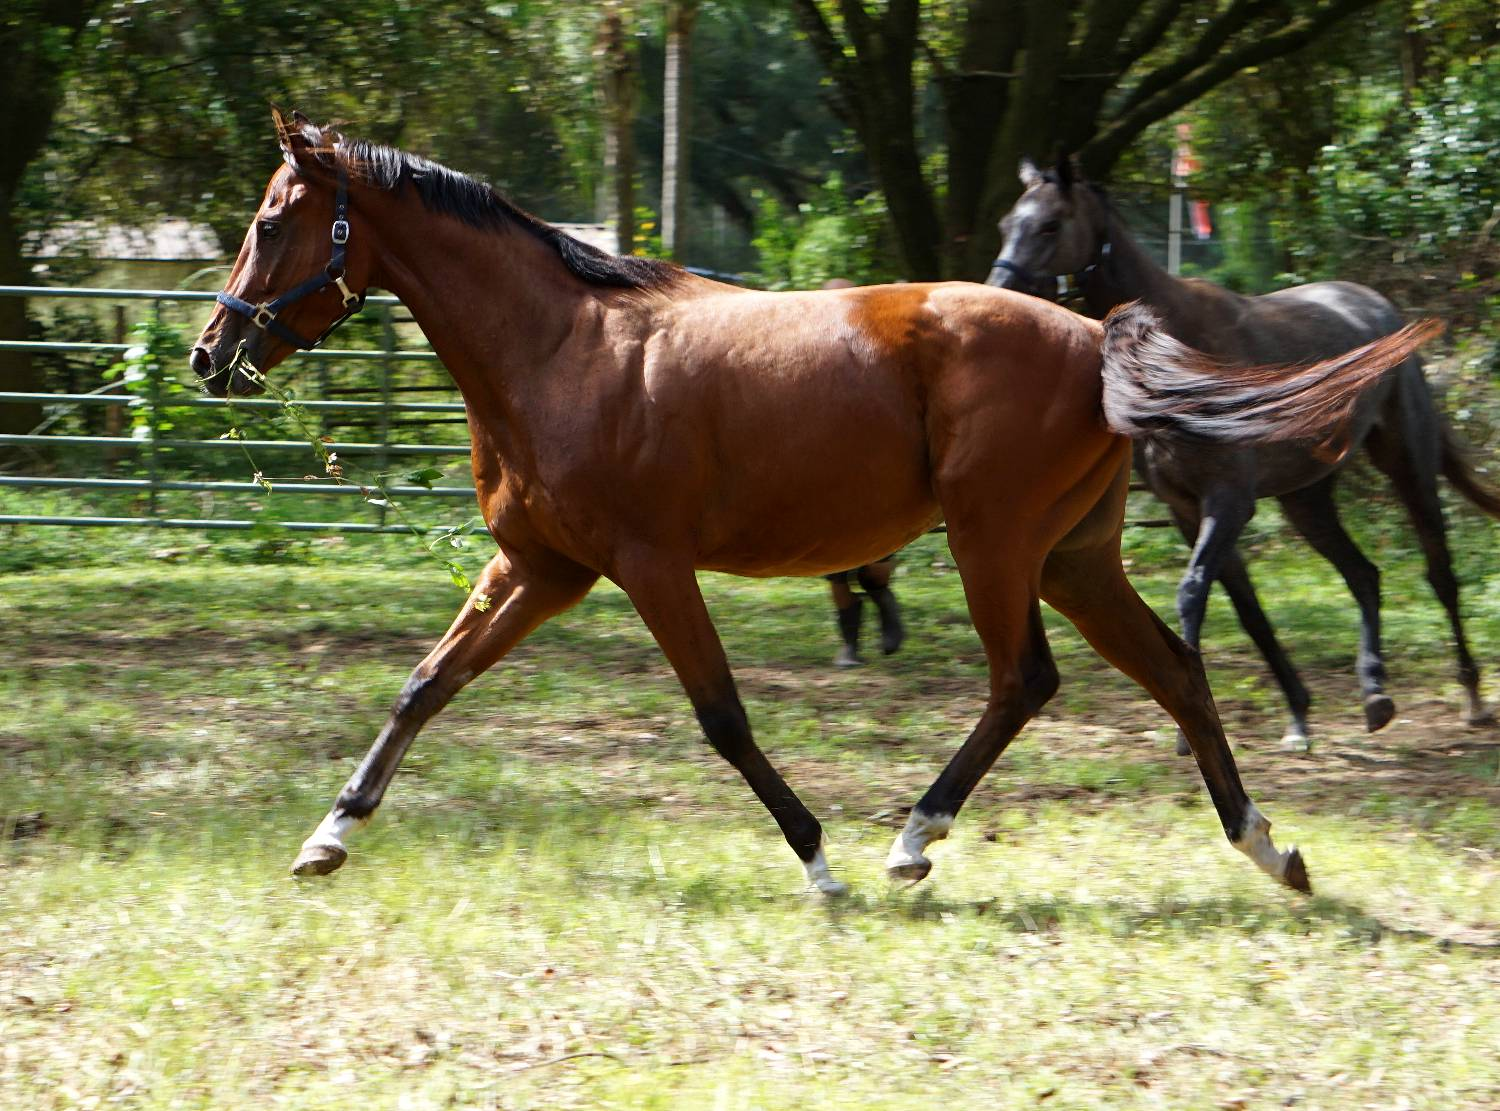 THOROUGHBRED GELDING BY STRAIGHT MAN OUT OF STAKES PLACED MARE CITY PRO BY FORTUNATE PROSPECT - EVENTING PROSPECT FOR SALE